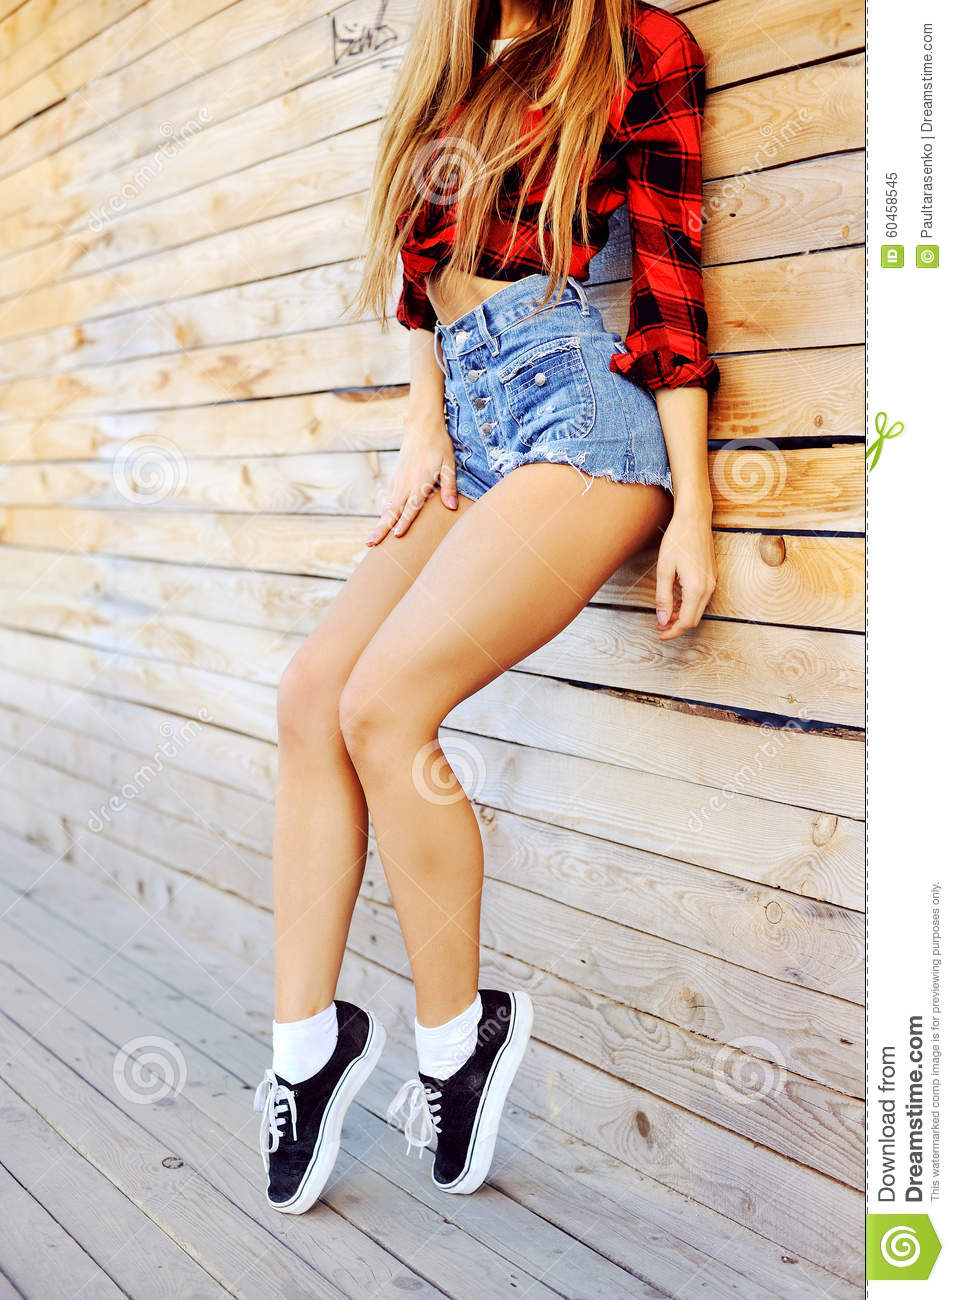 Hot Tan Slim Woman Legs In Sneakers And Jeans Shorts - Clos Stock ...